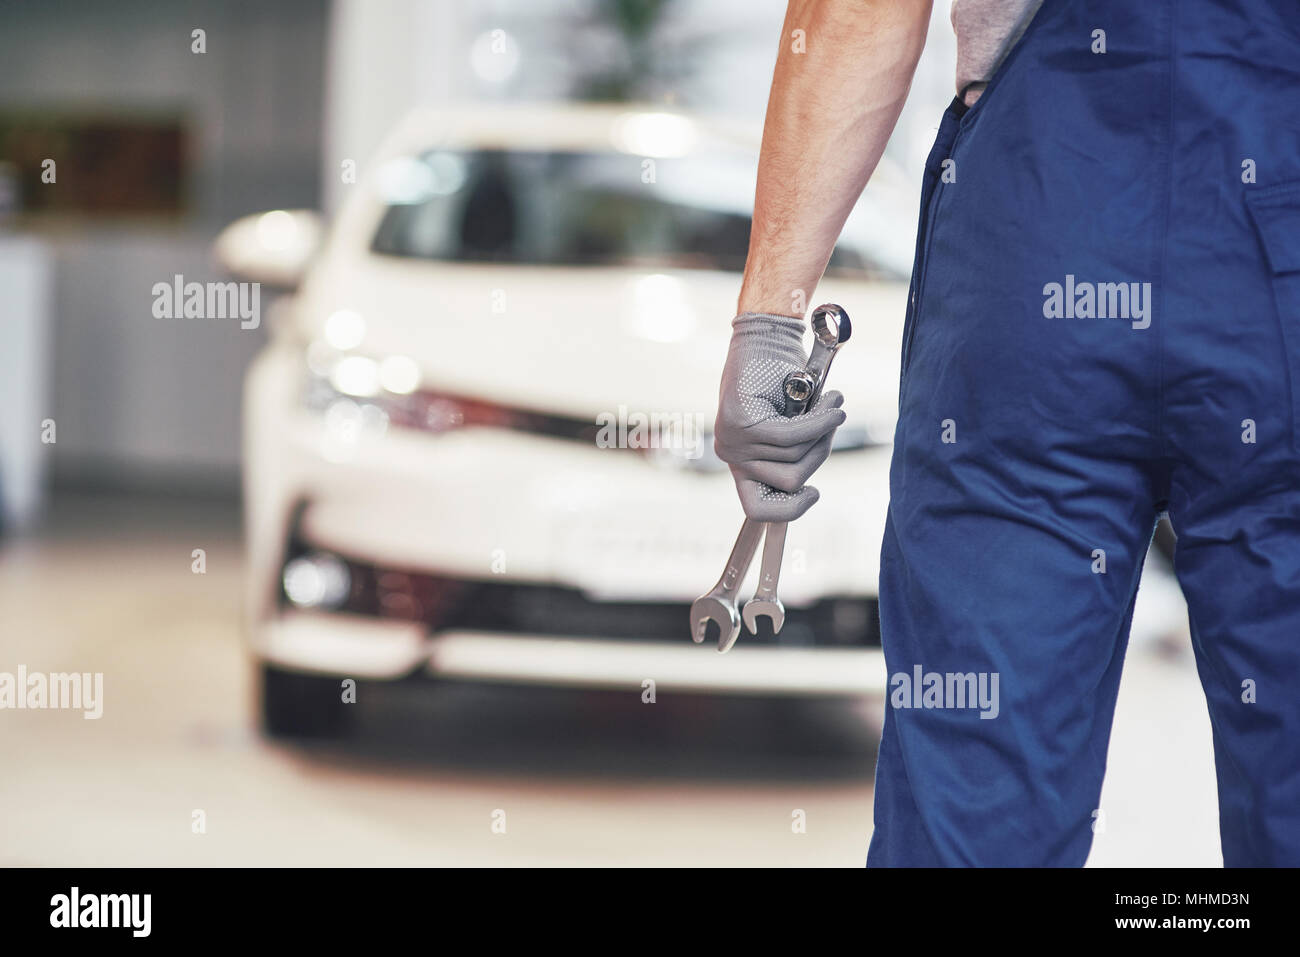 Hands of car mechanic with wrench in garage - Stock Image